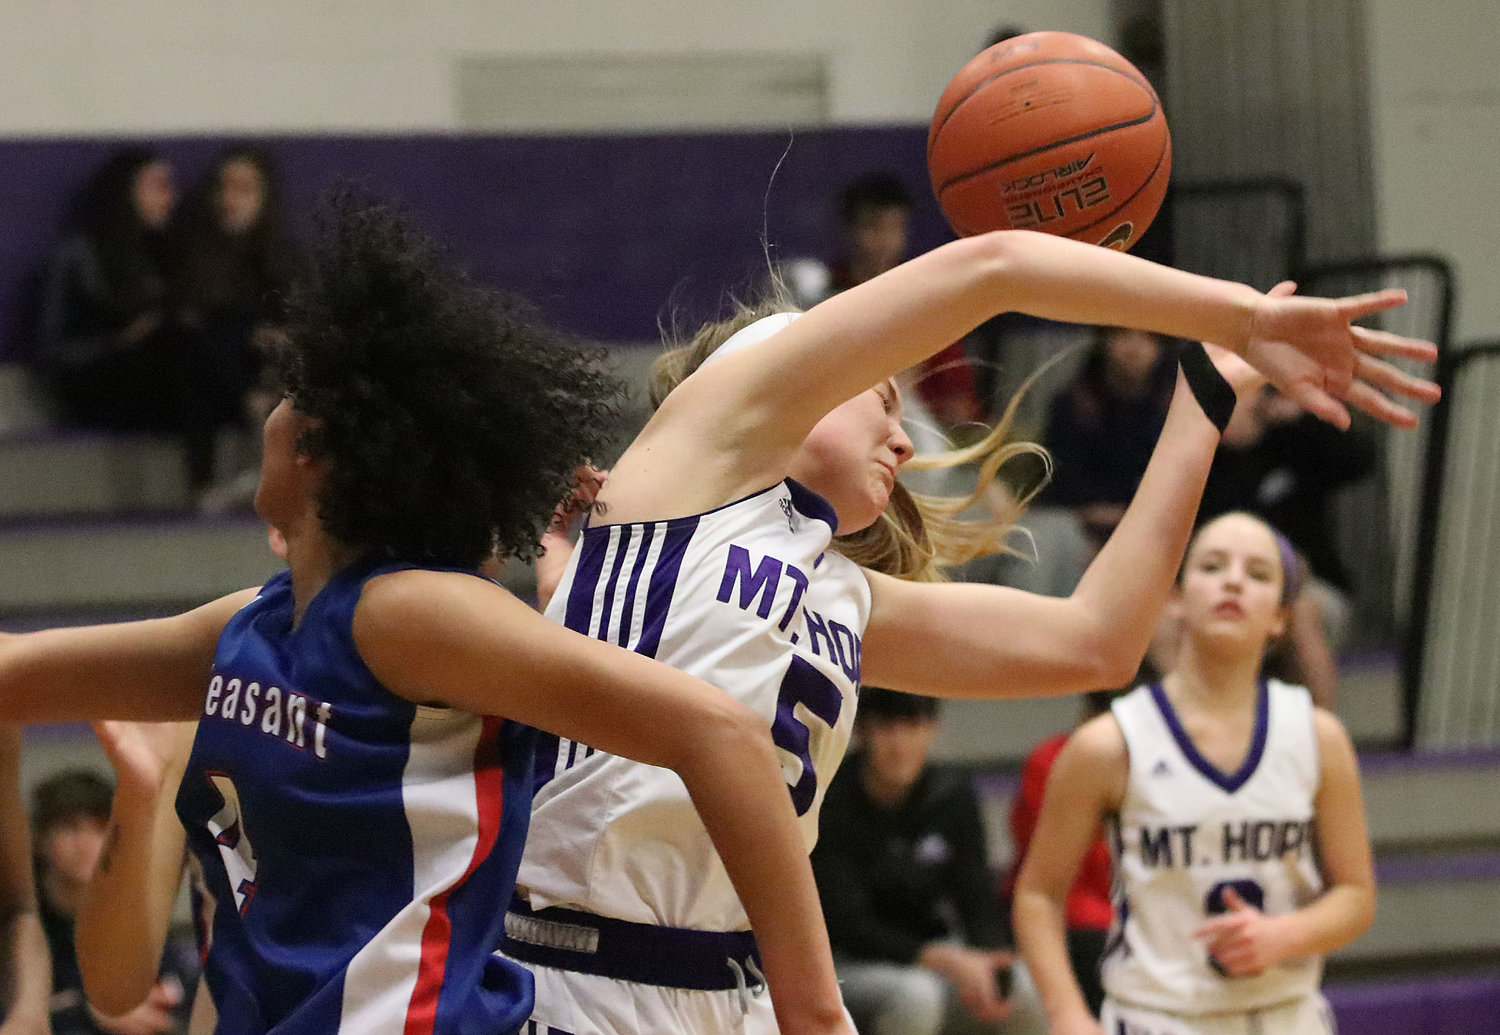 Senior forward Zoe Mouligne attempts to grab a rebound in the first half of their game against Mt. Pleasant.